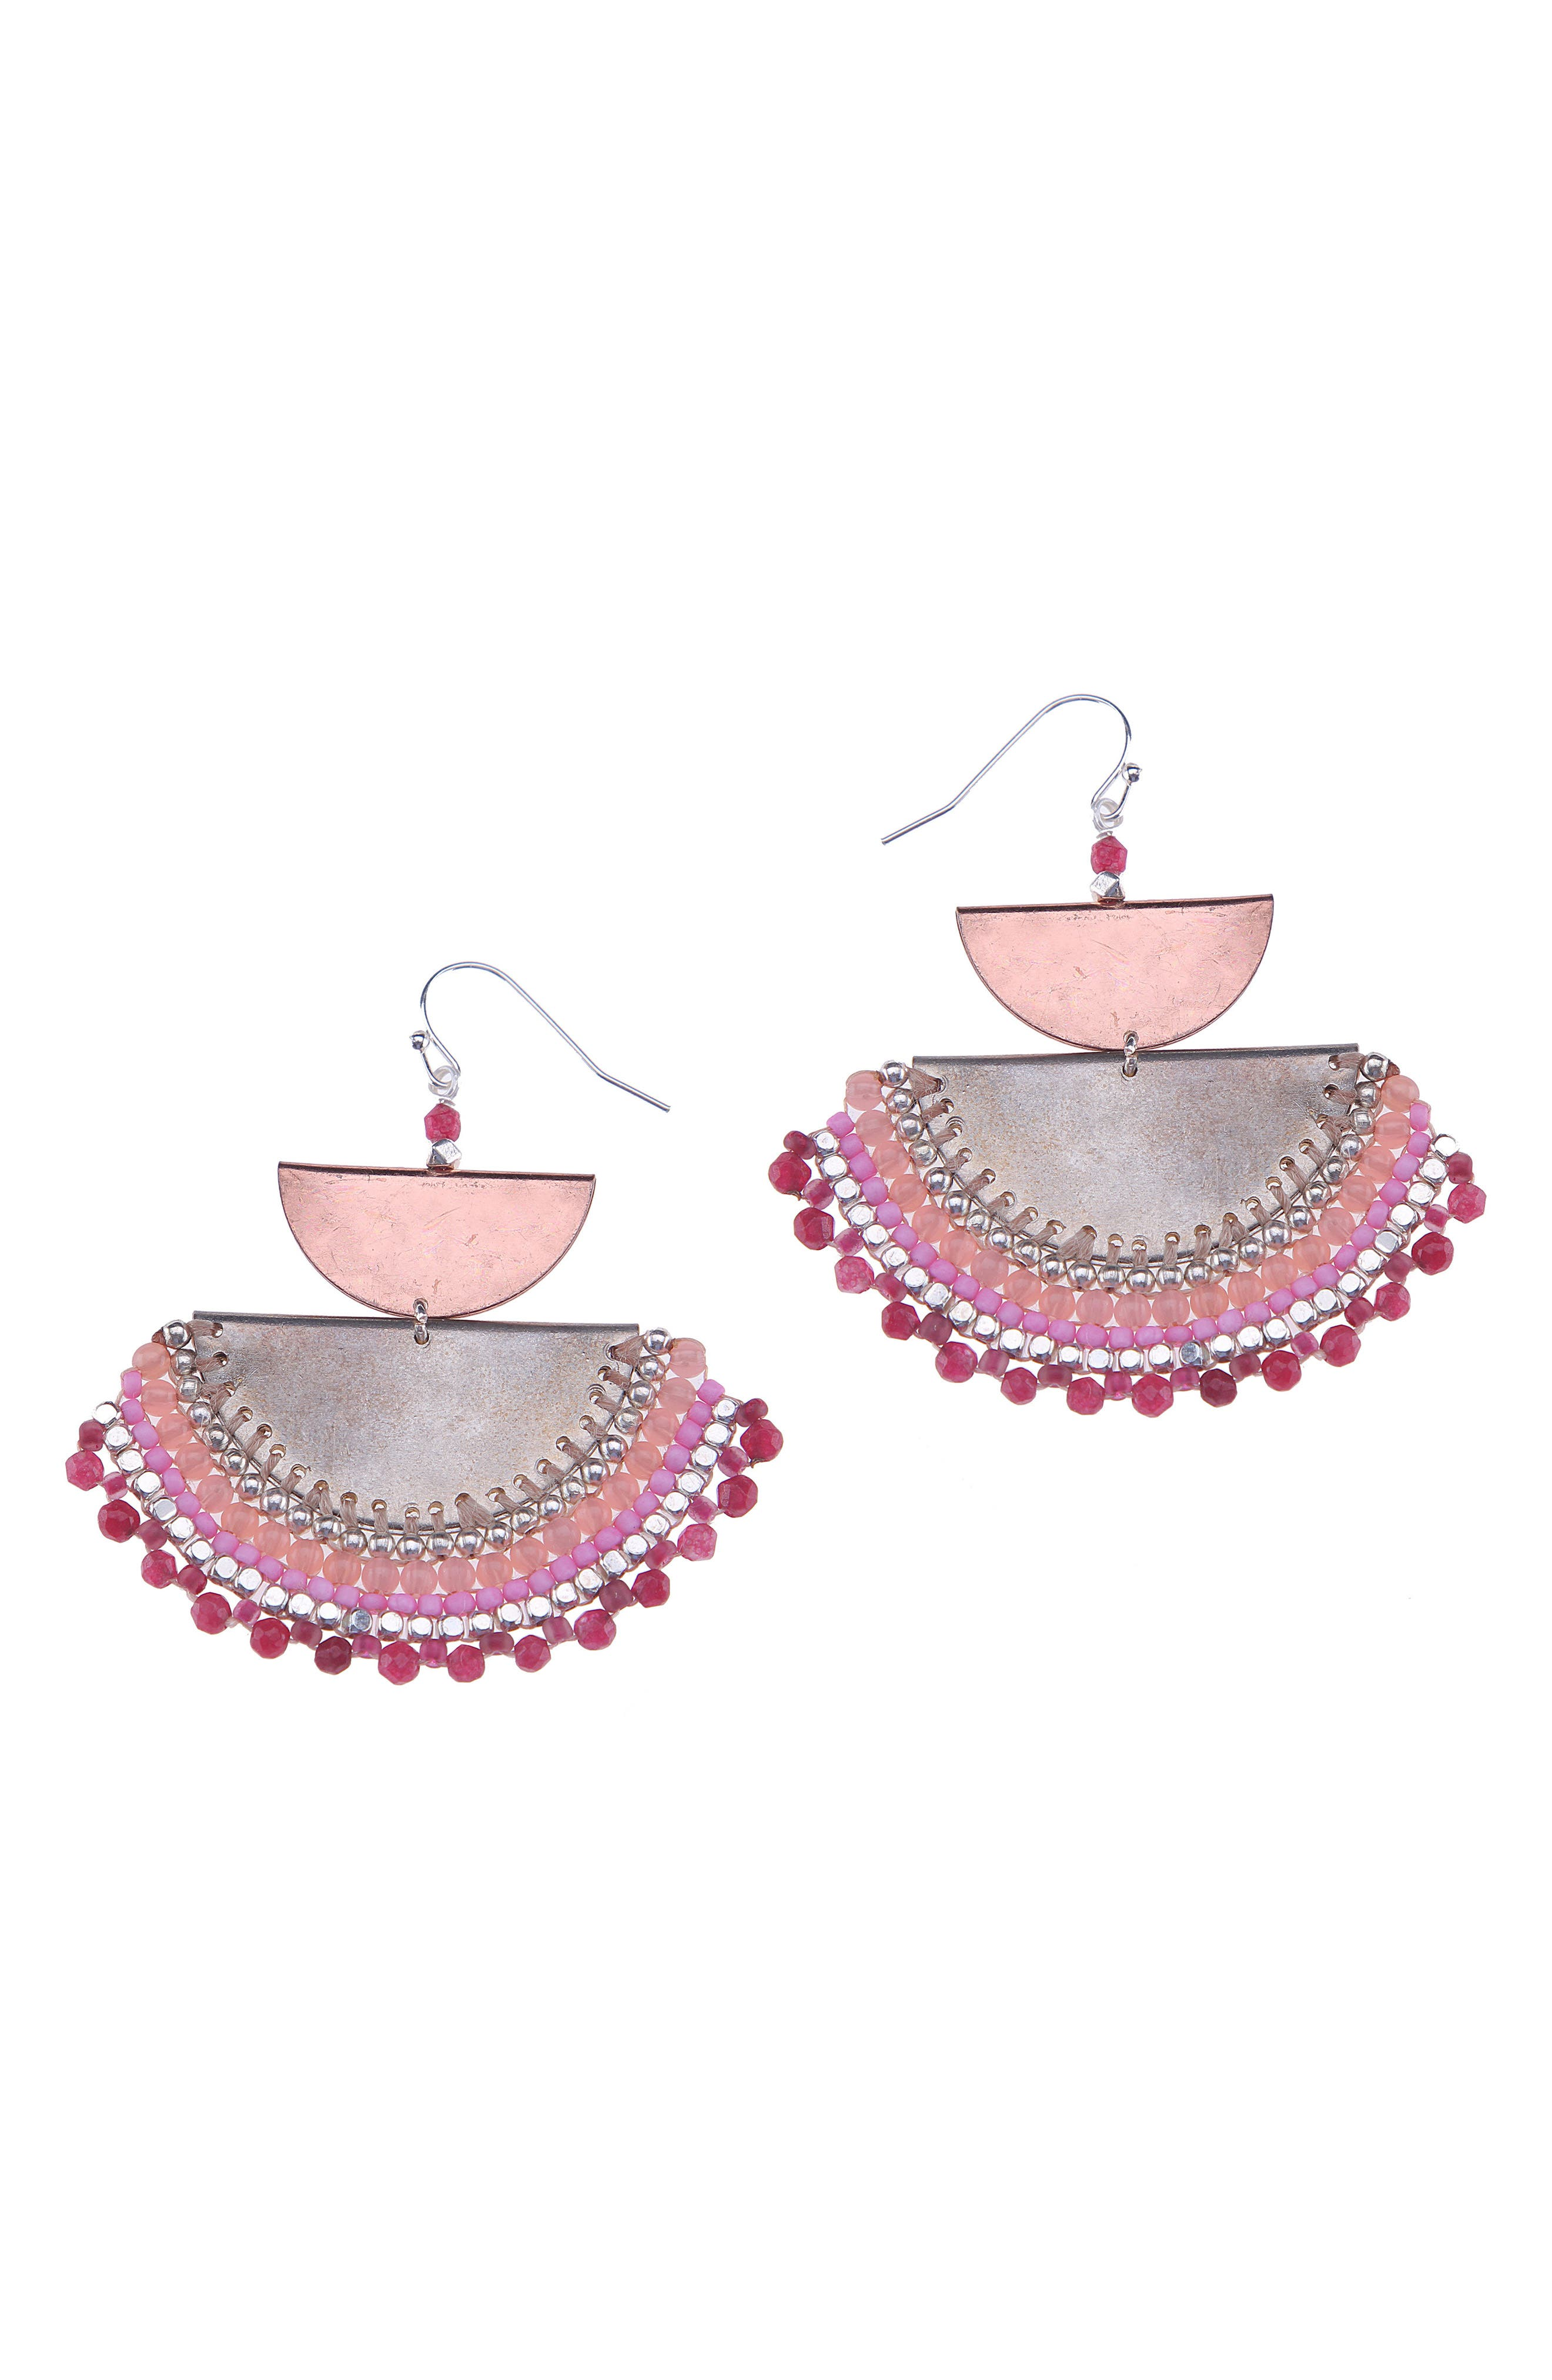 Agate Beaded Half Moon Drop Earrings,                             Main thumbnail 1, color,                             Red/ Pink